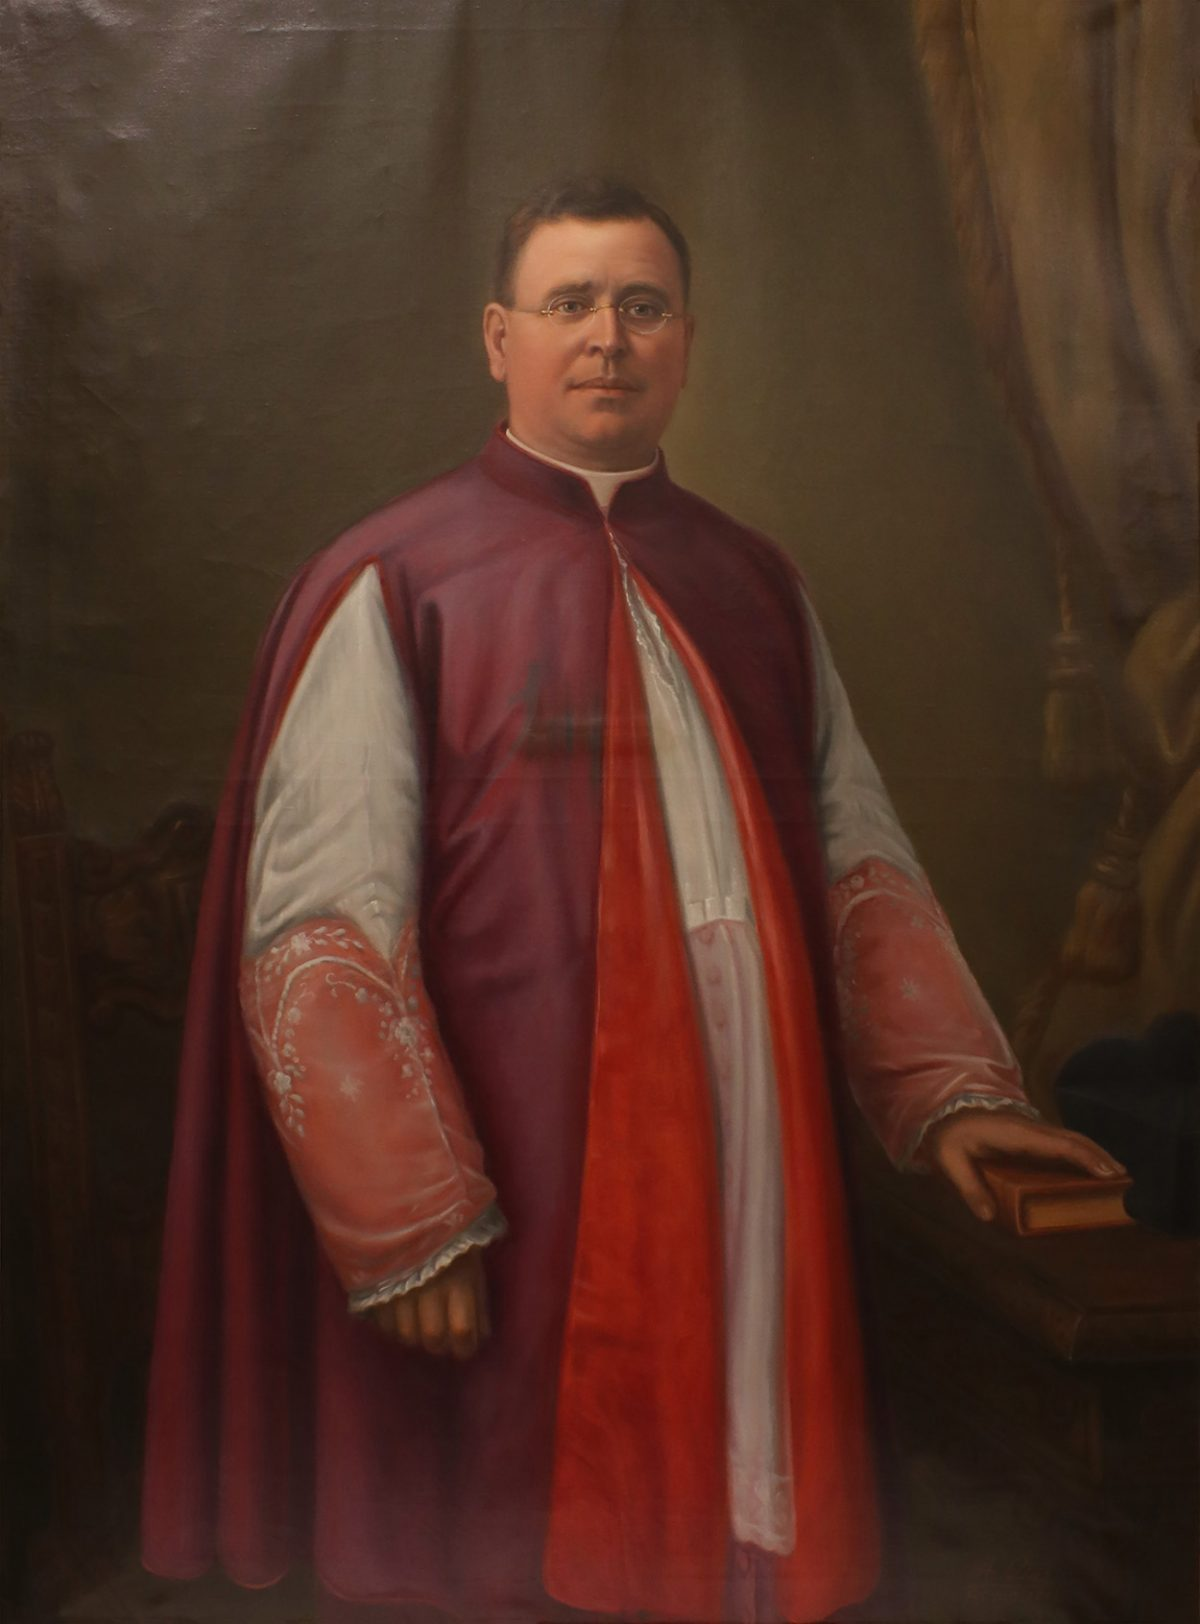 Object of the Week – Portrait of Monsignor John A. Stafford, S.T.L.